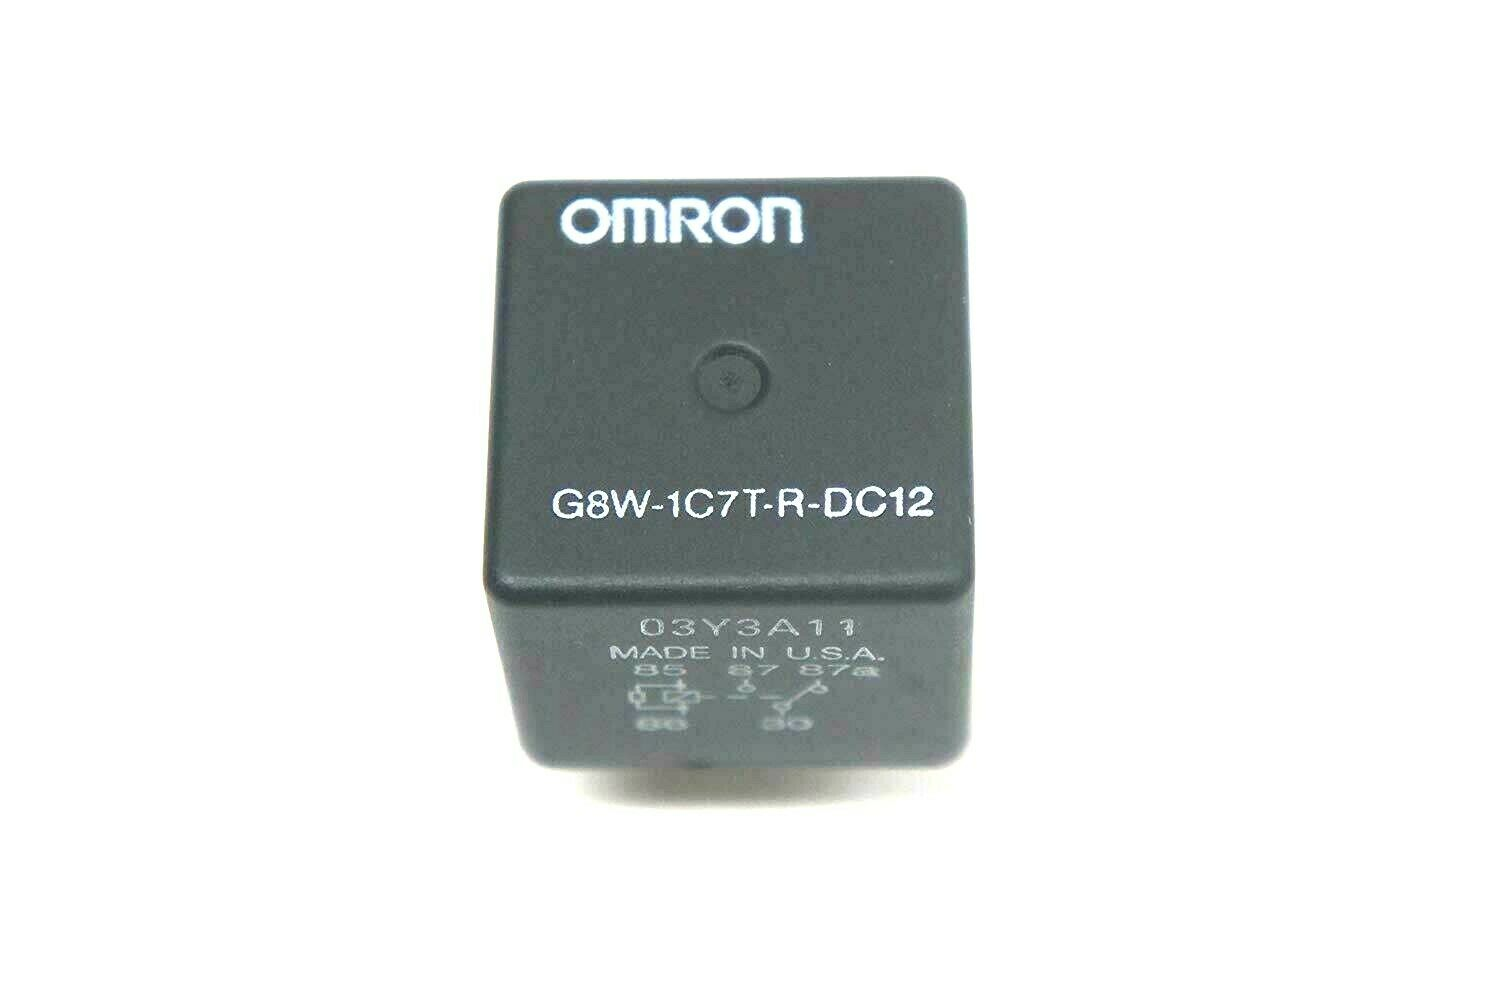 SPDT 35A 12VDC OMRON ELECTRONIC COMPONENTS G8W-1C7T-R-DC12 AUTOMOTIVE RELAY